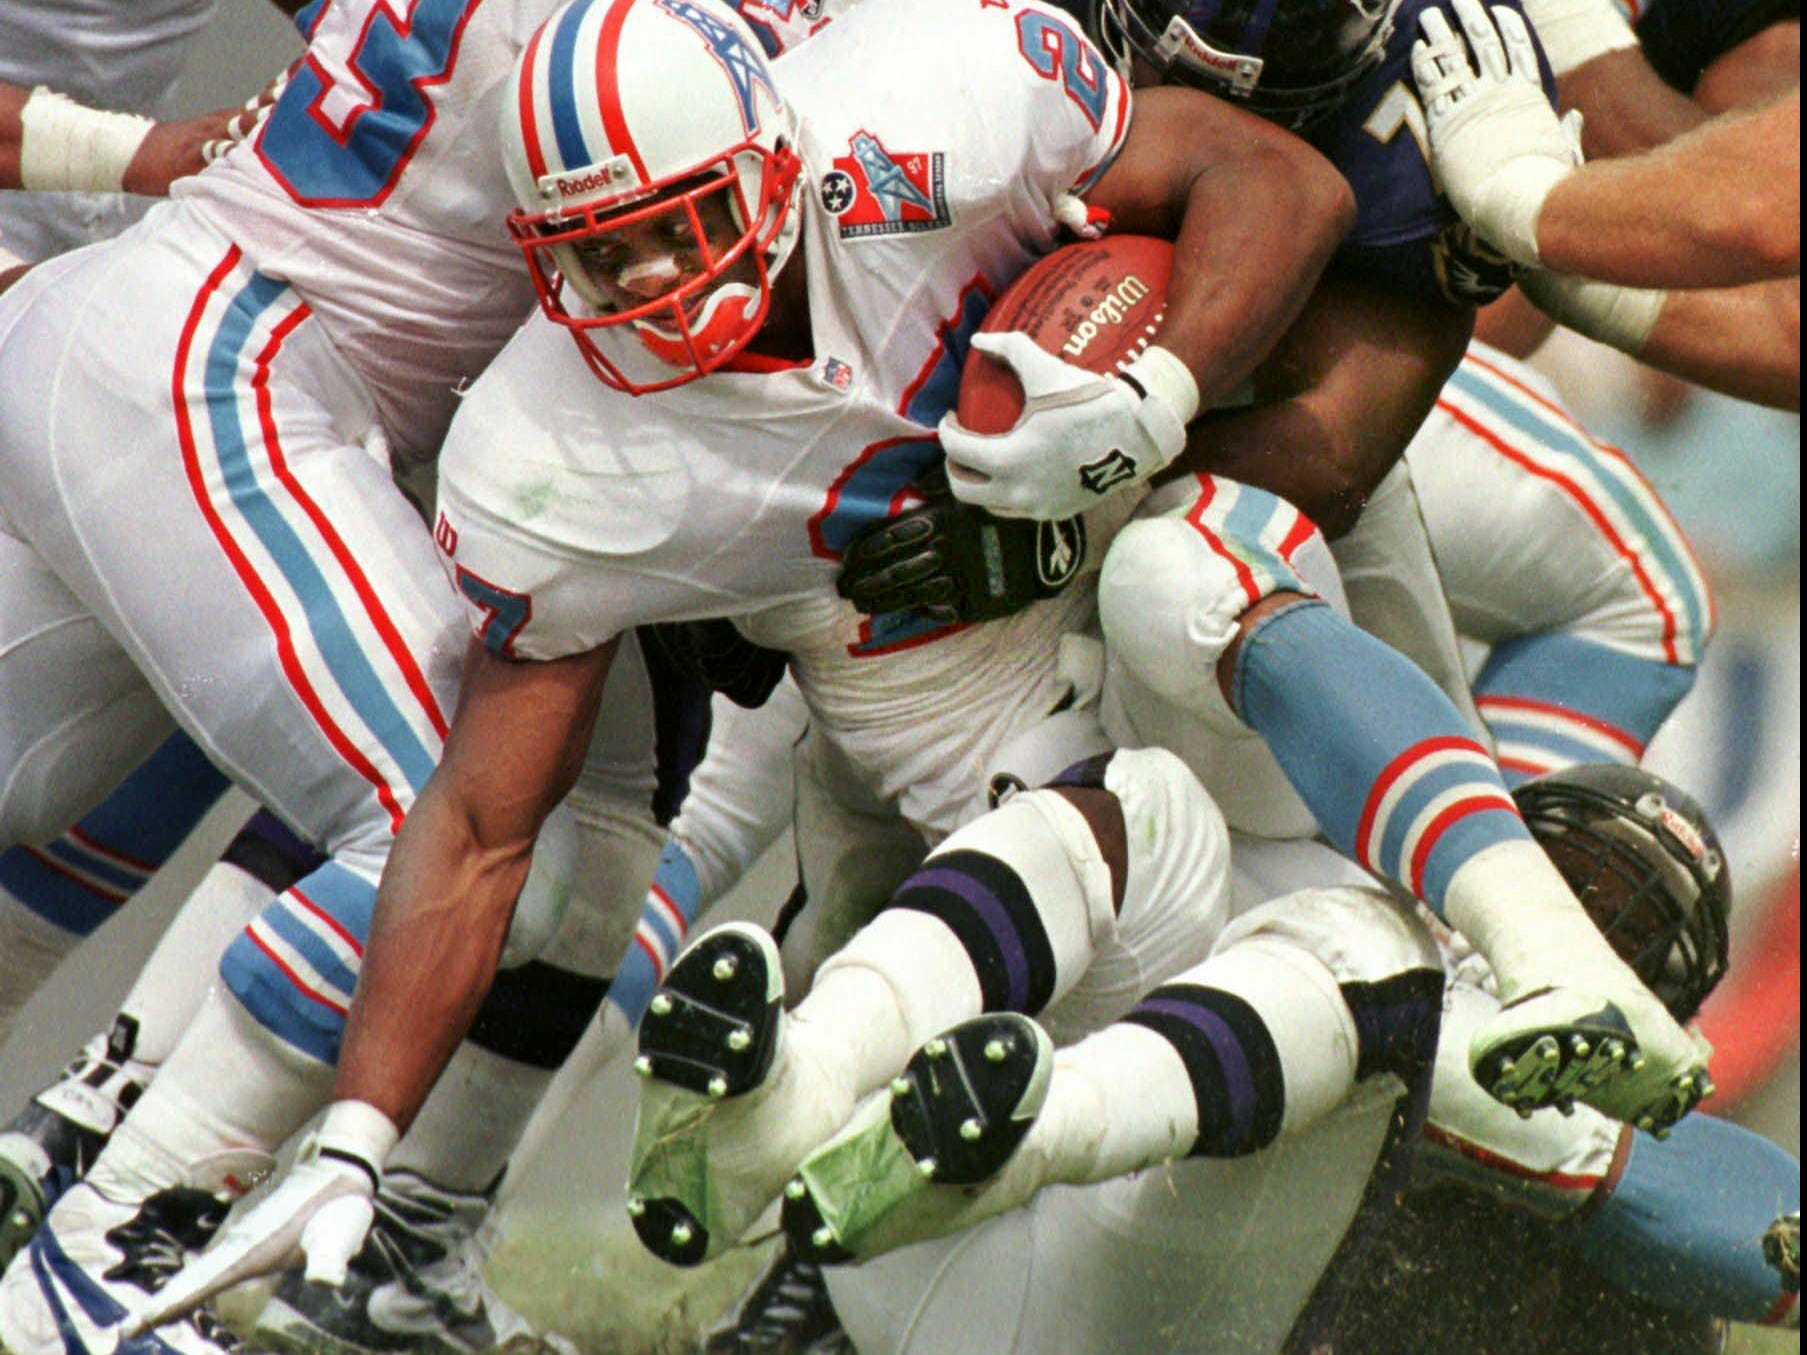 Tennessee Oilers running back Eddie George is stopped by Baltimore Ravens' lineman Larry Webster (79) during the Ravens' 36-10 win Sept. 21, 1997 in Memphis. The Ravens' defense held George to 40 yards rushing for the game.